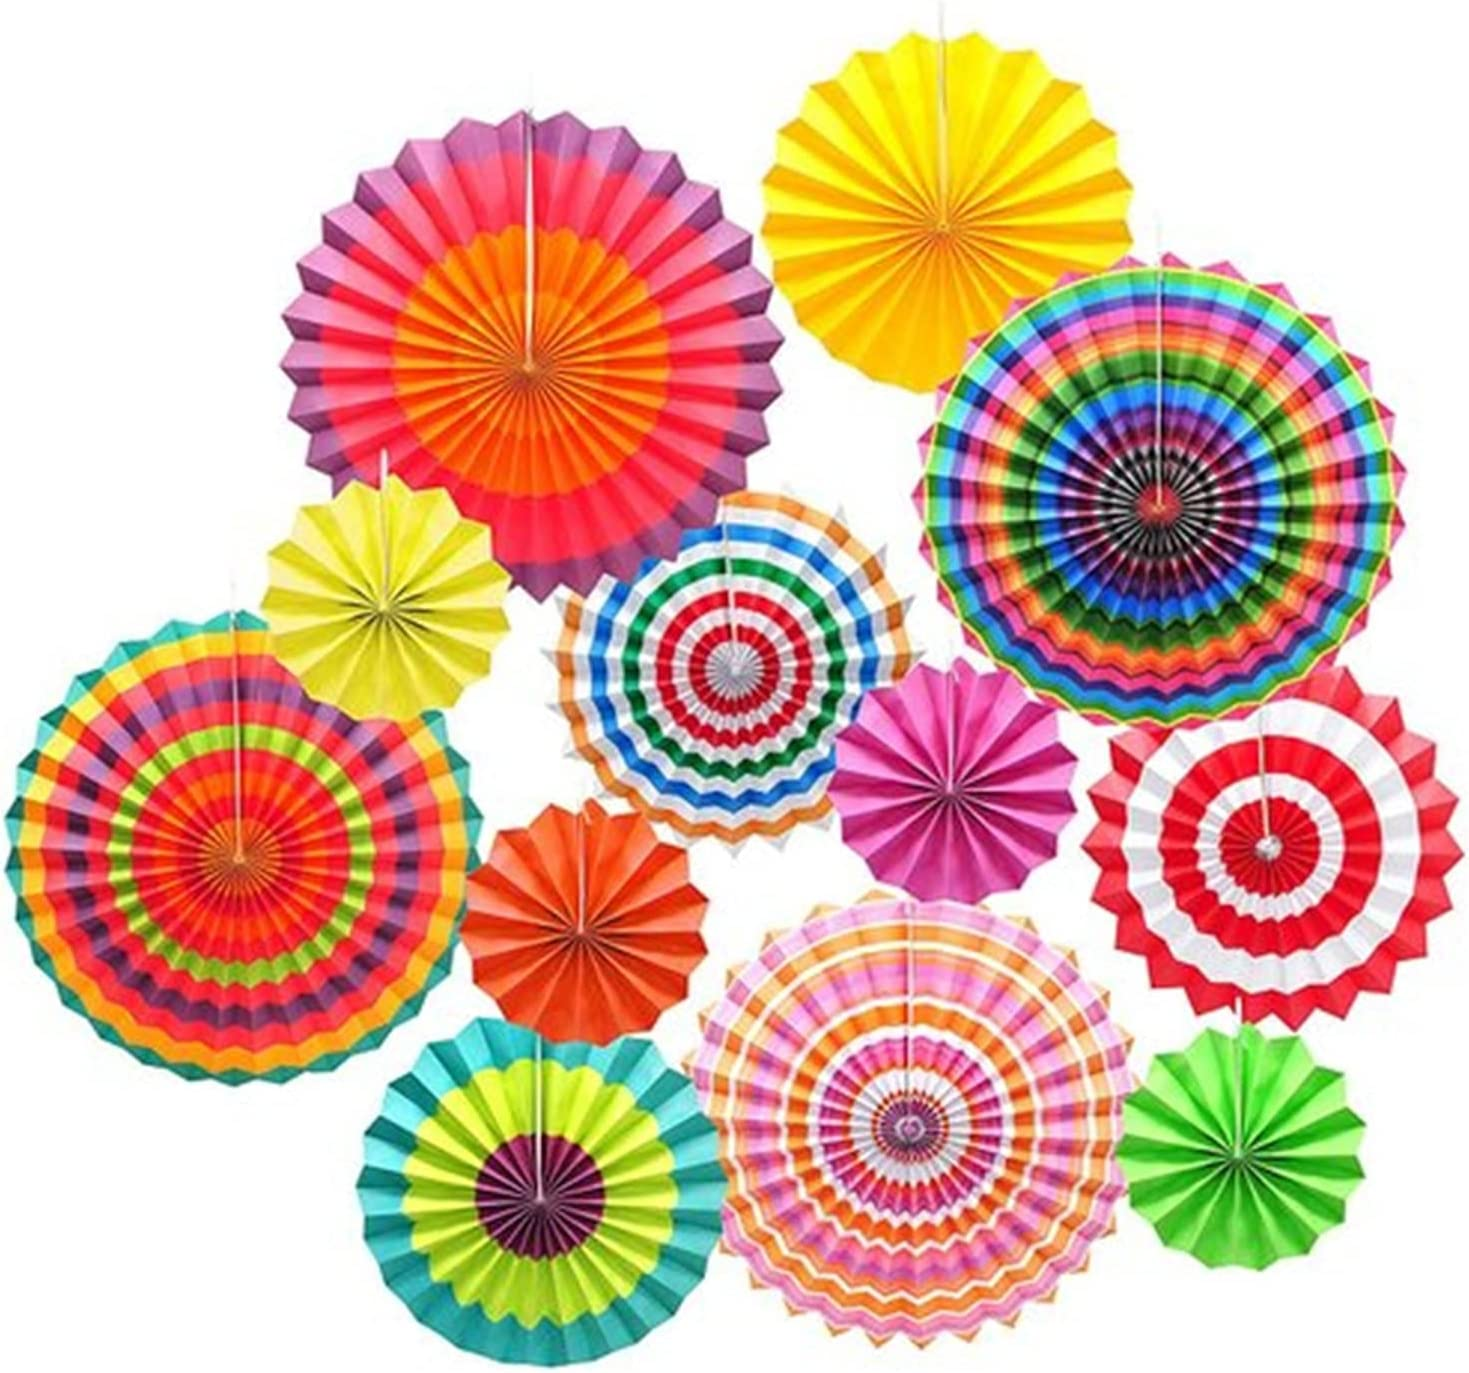 Cash special price YXYX Chinese Lanterns 12 Pcs Hanging Circle M Max 51% OFF Paper Colorful Fan